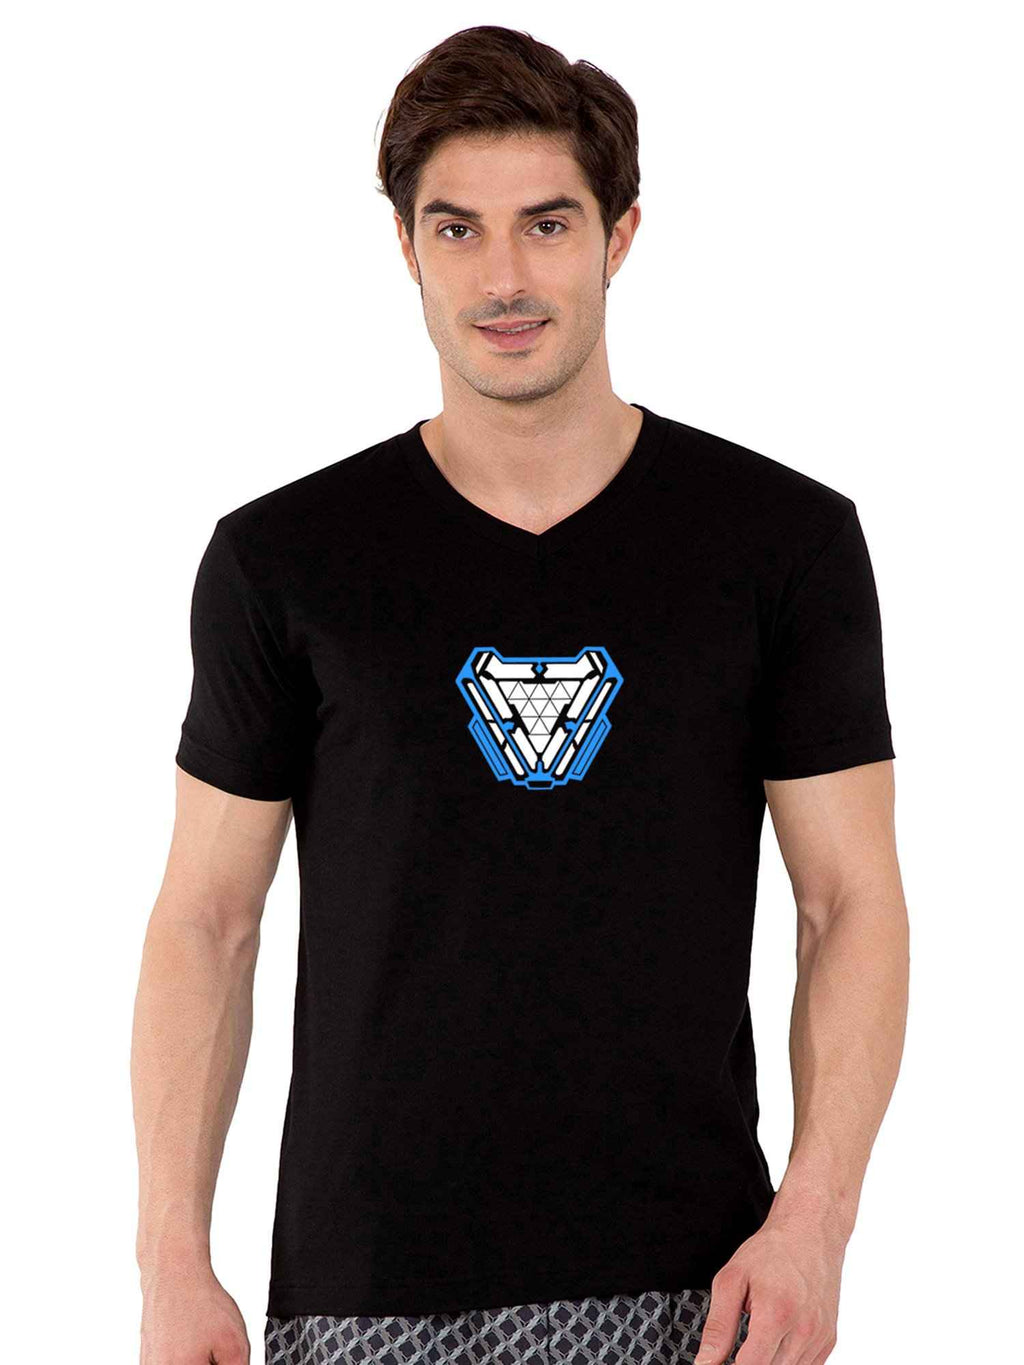 GID Arc Reactor V-Neck Half Tshirt - bluehaat